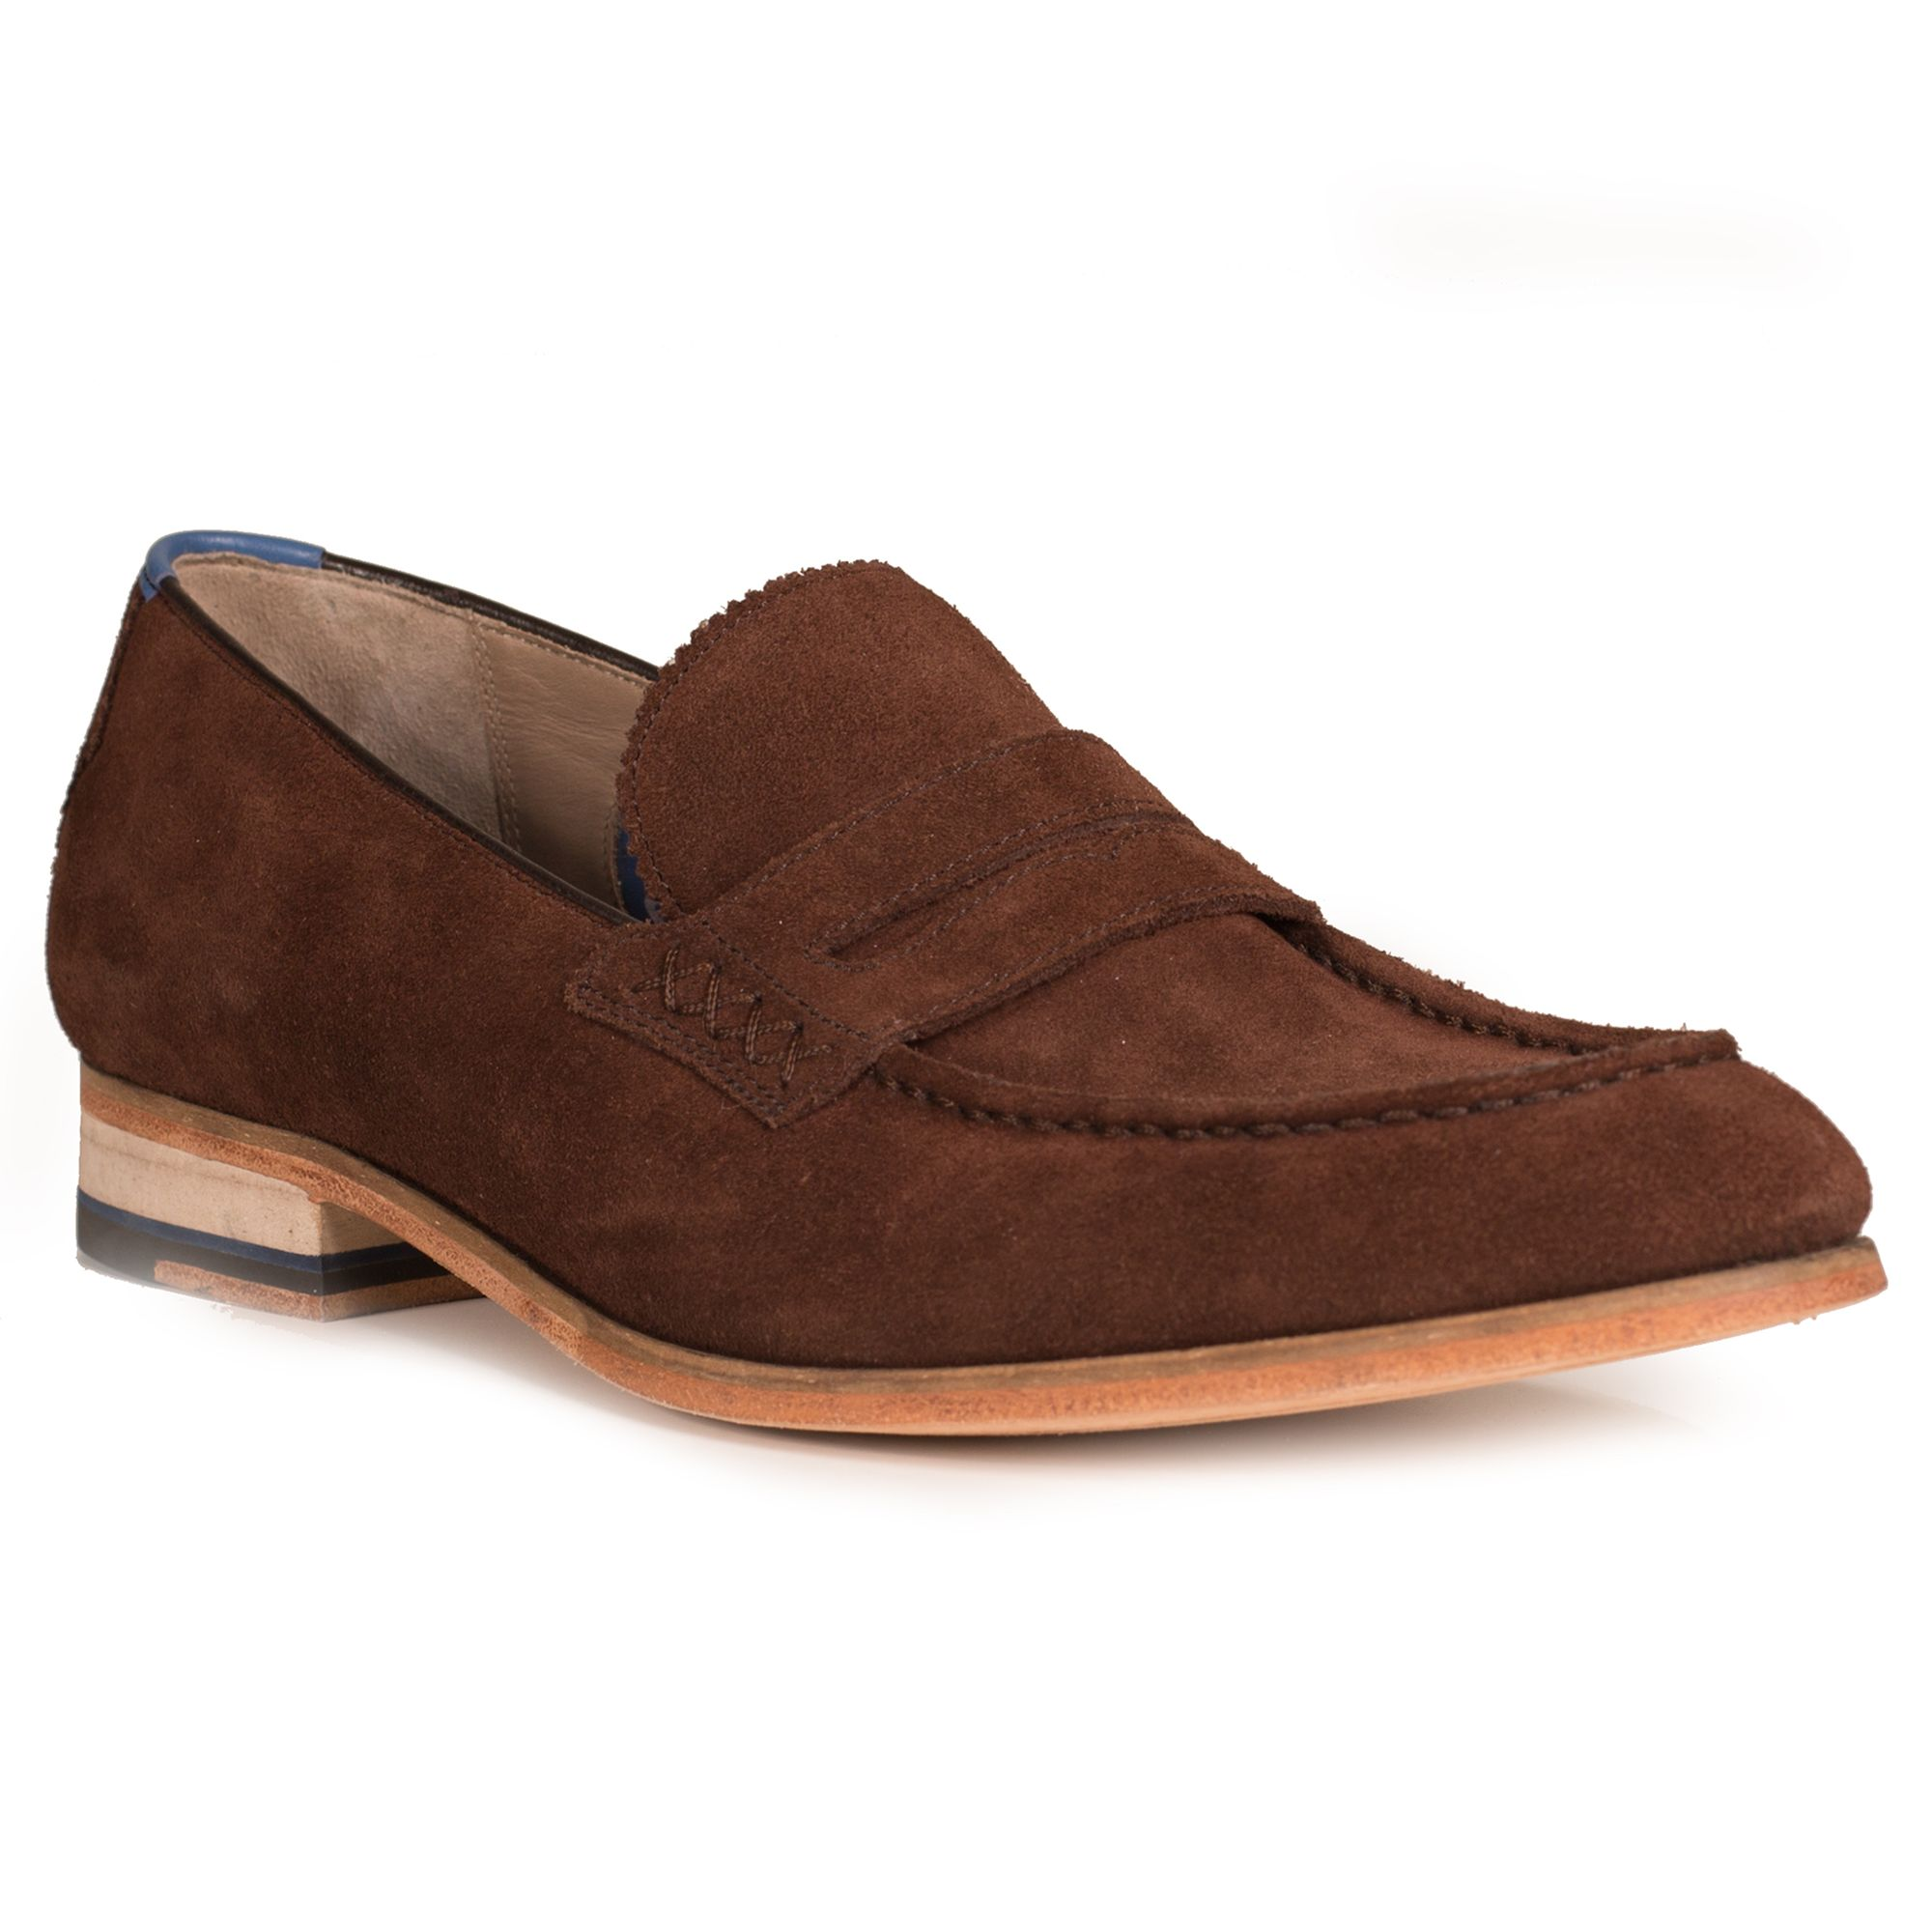 Oliver Sweeney Oliver Sweeney Penny Loafers, Chocolate